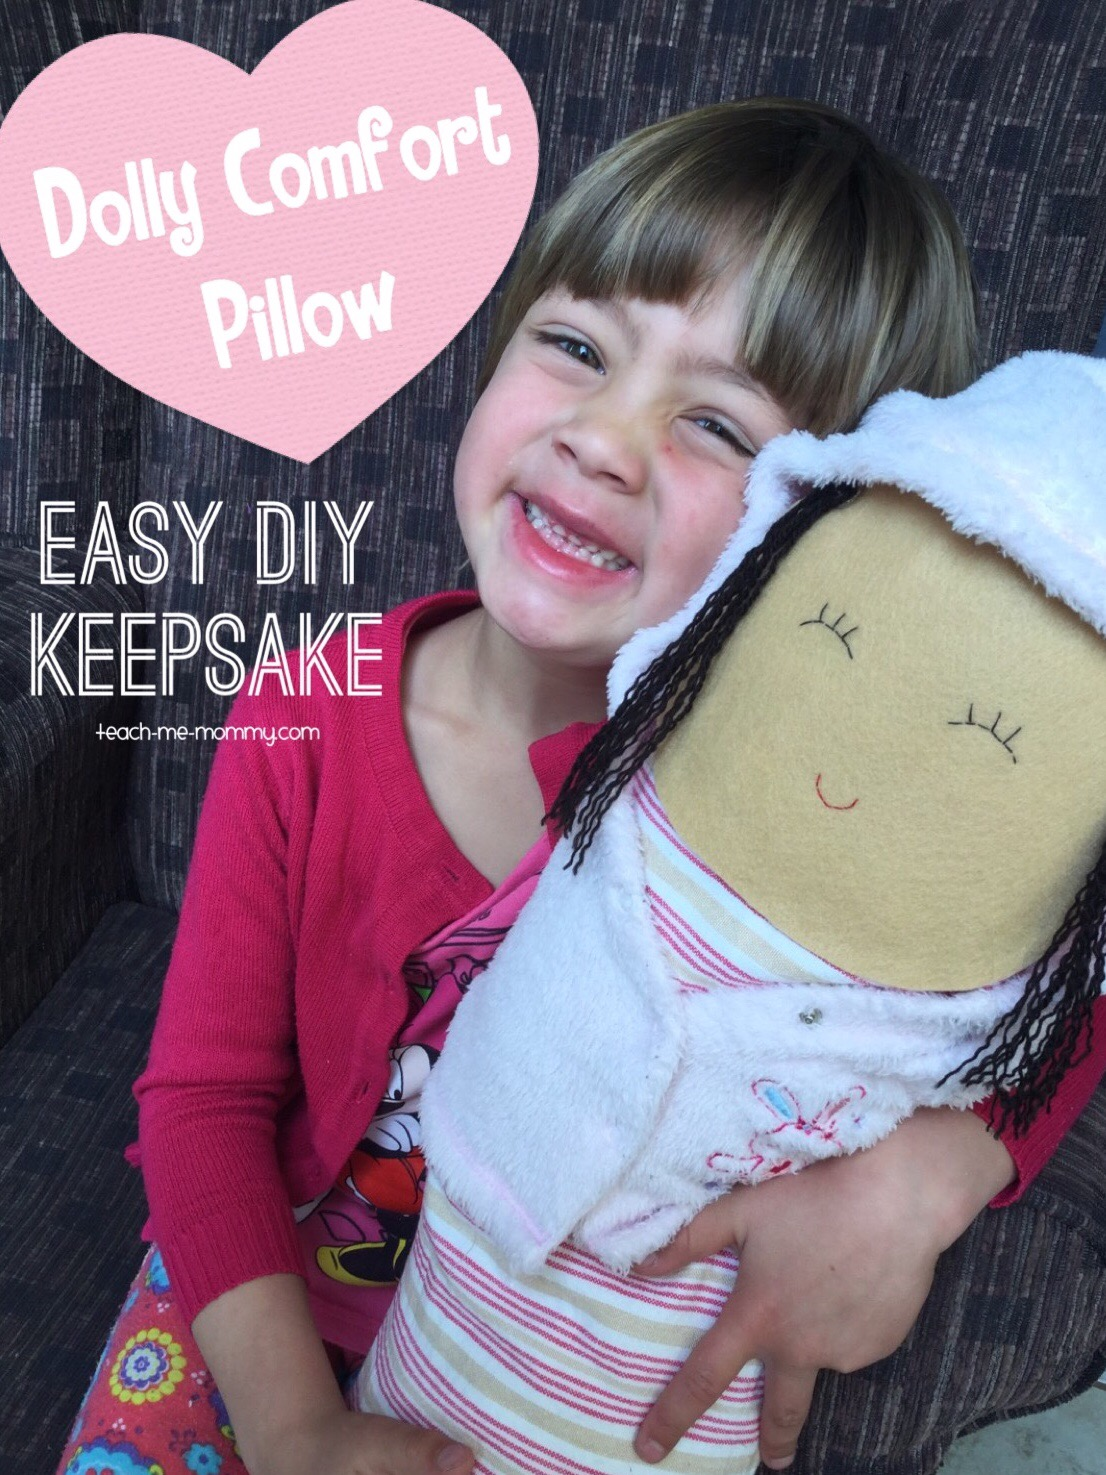 Dolly comfort pillow